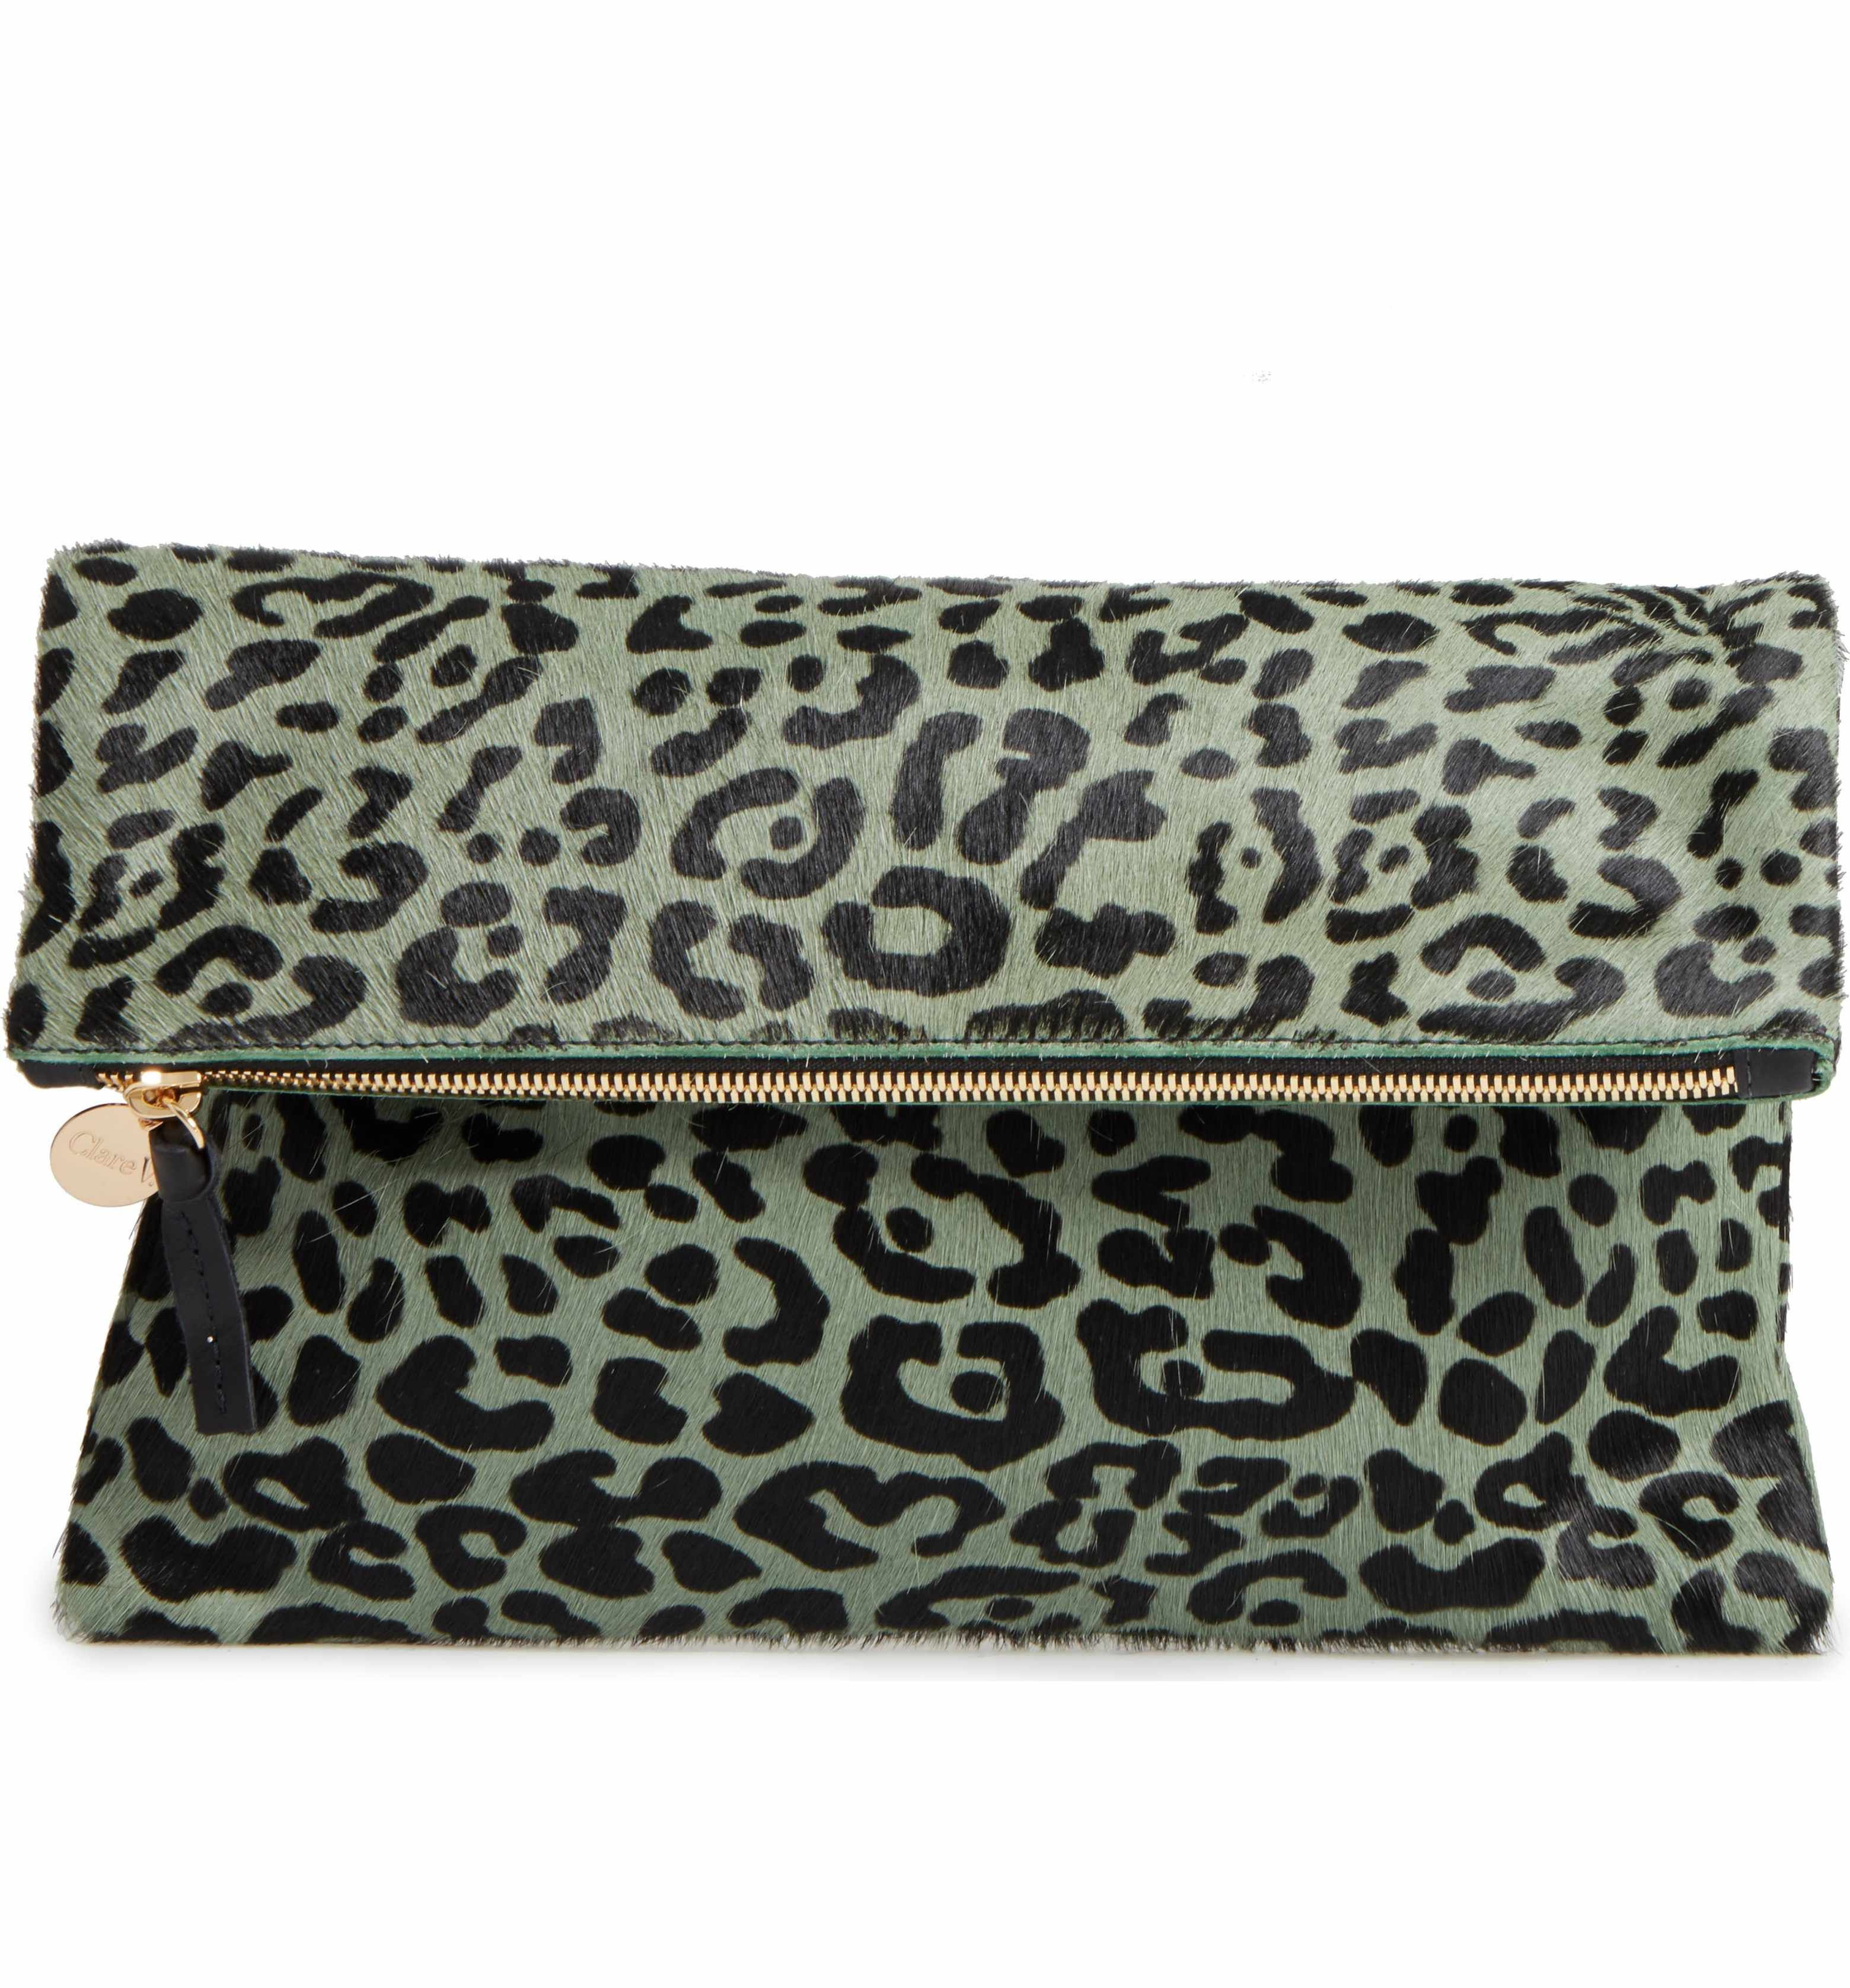 coupon codes discount hot-selling clearance Main Image - Clare V. Leopard Print Genuine Calf Hair ...